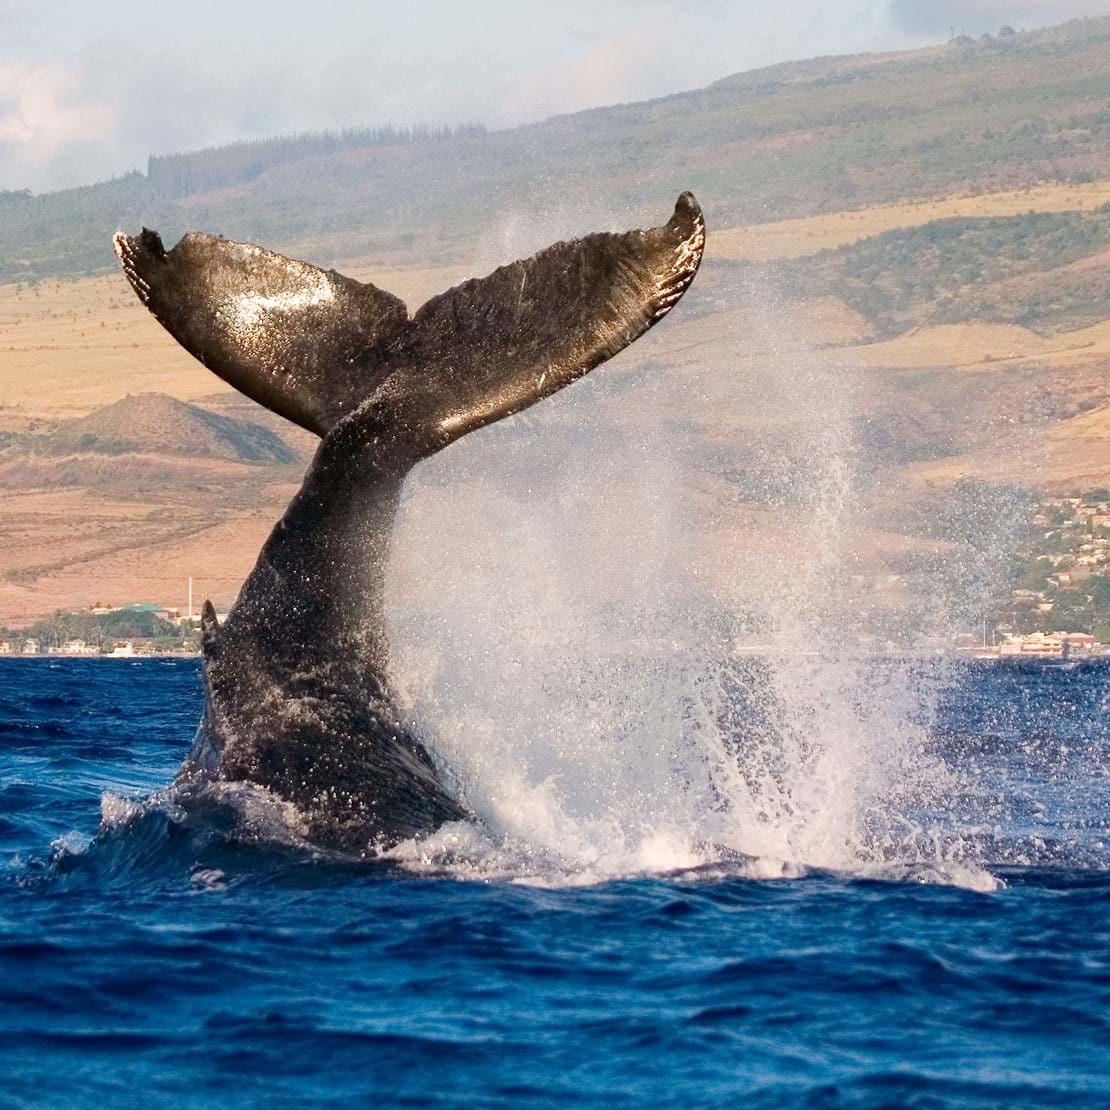 humpback whale tail slapping the tropical waters of hawaii_35381083.jpg